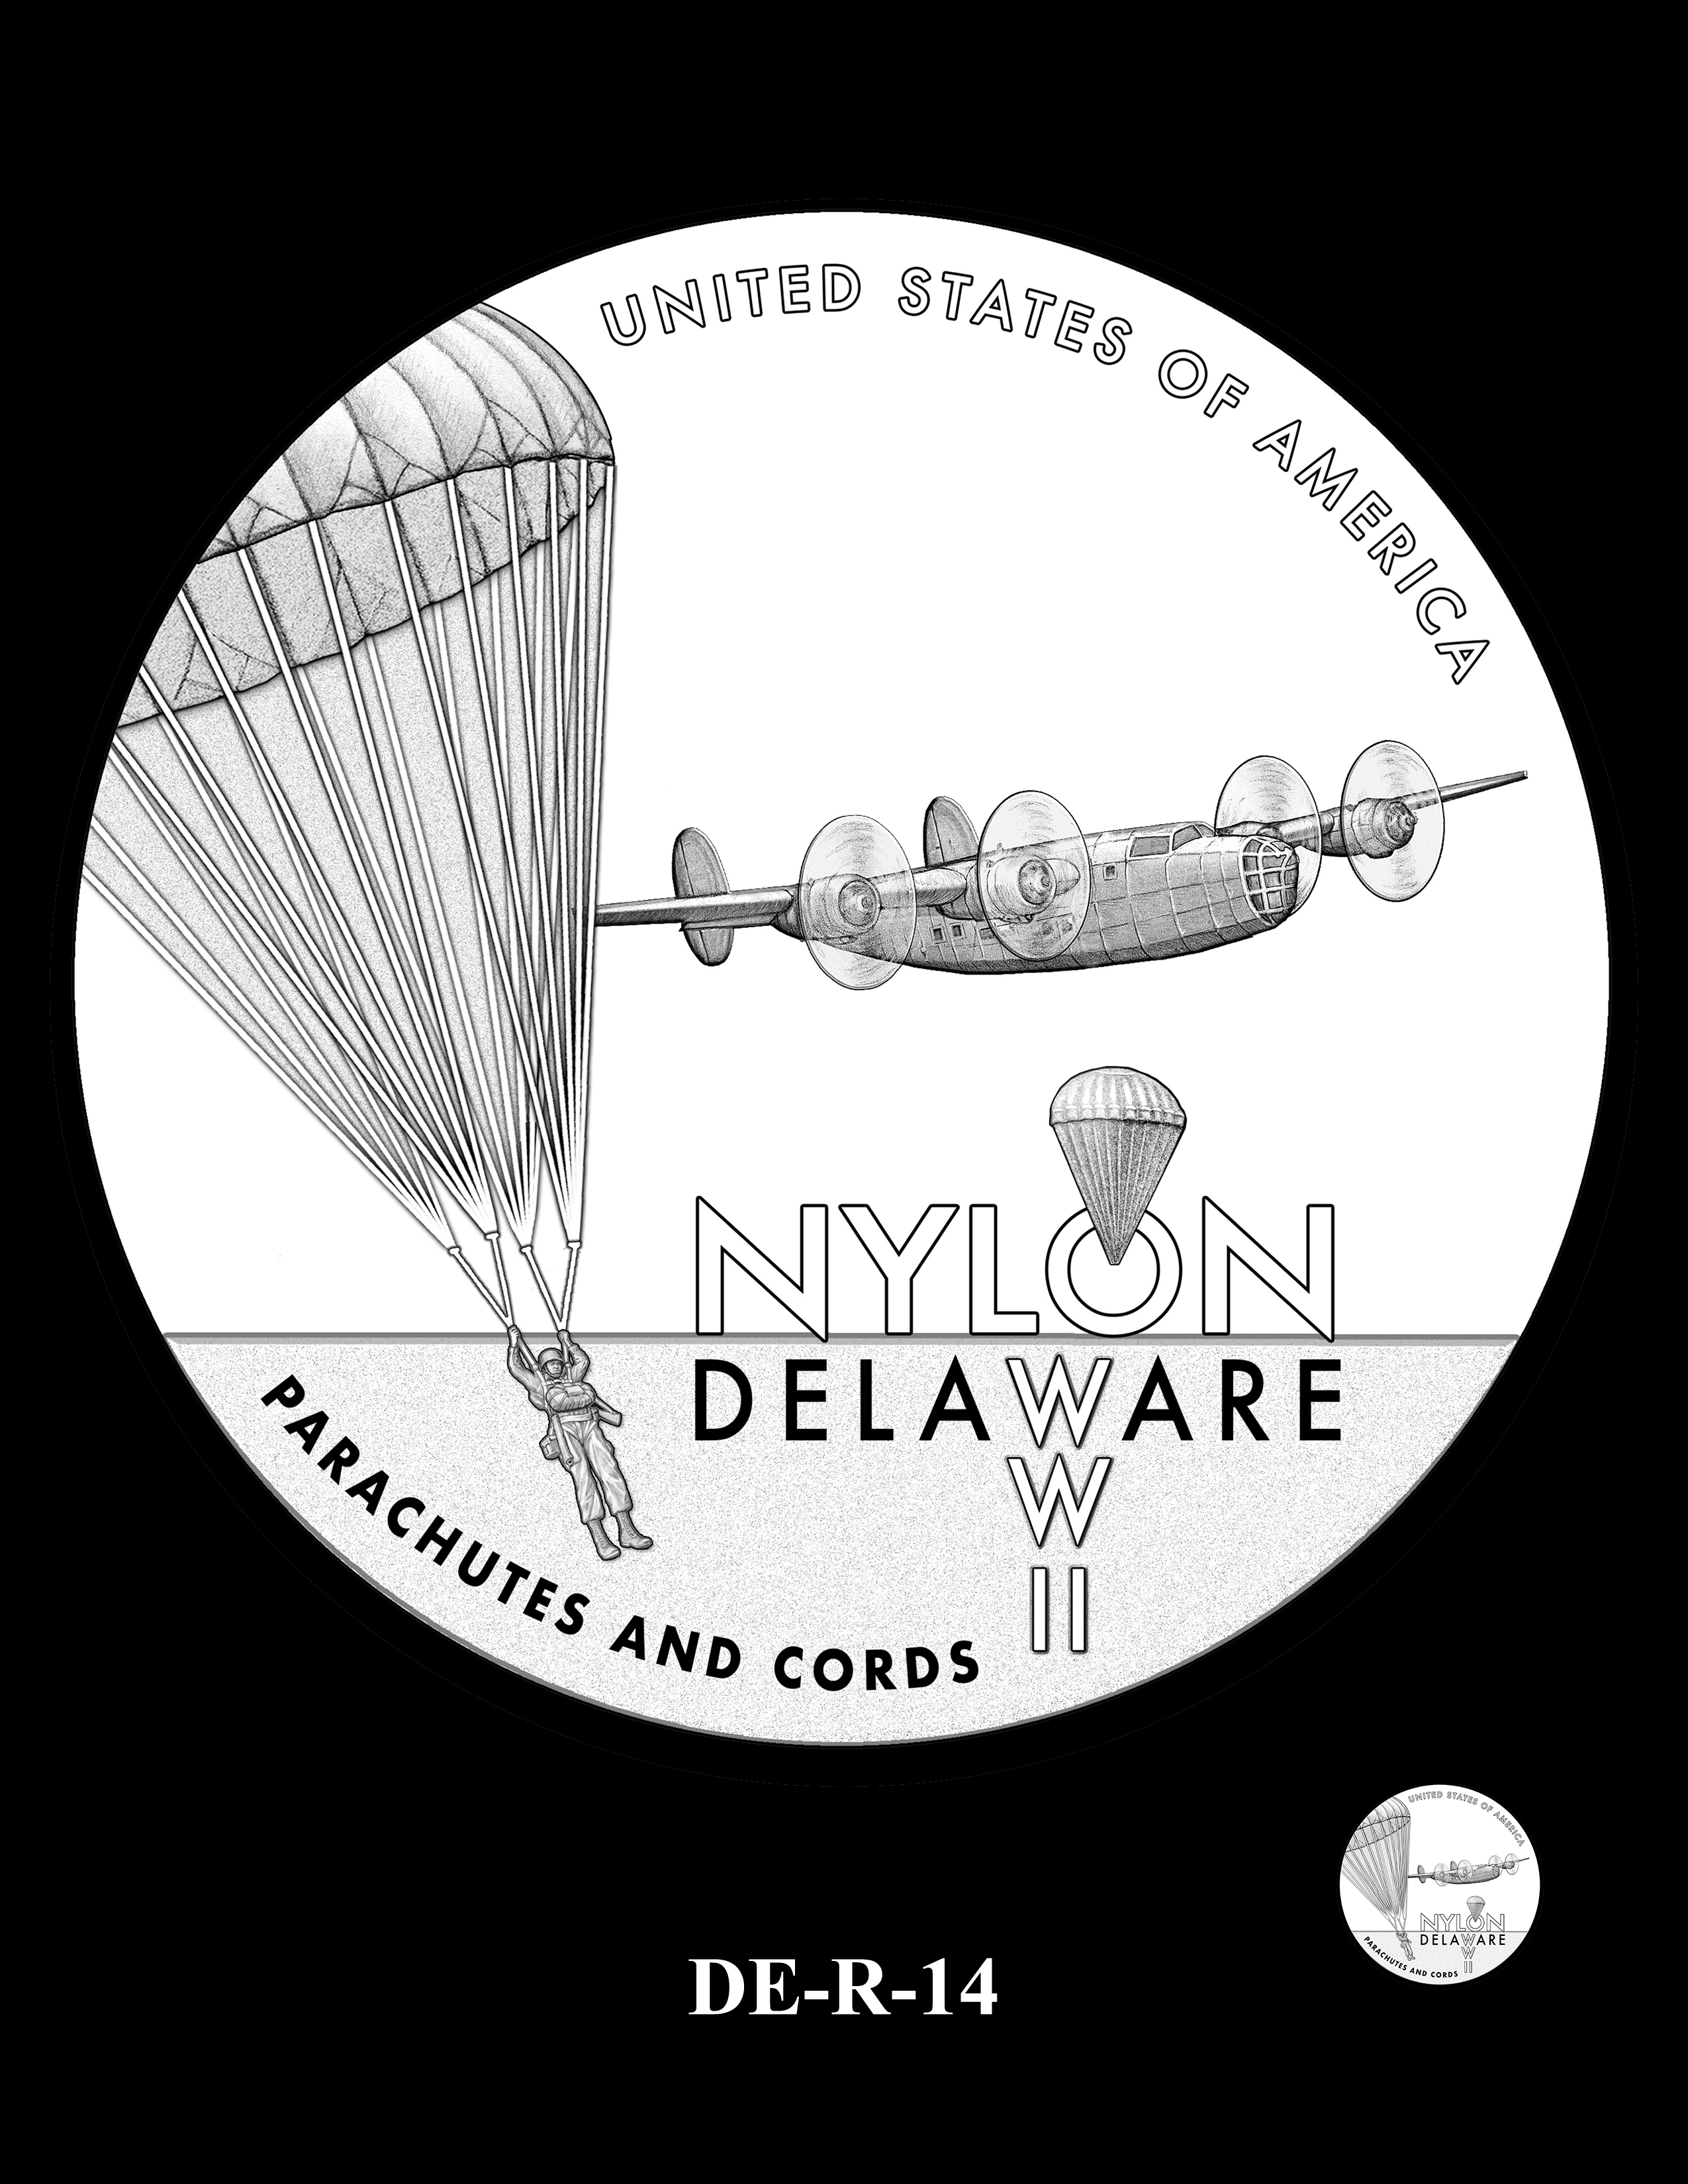 DE-R-14 -- 2019 American Innovation $1 Coin Program